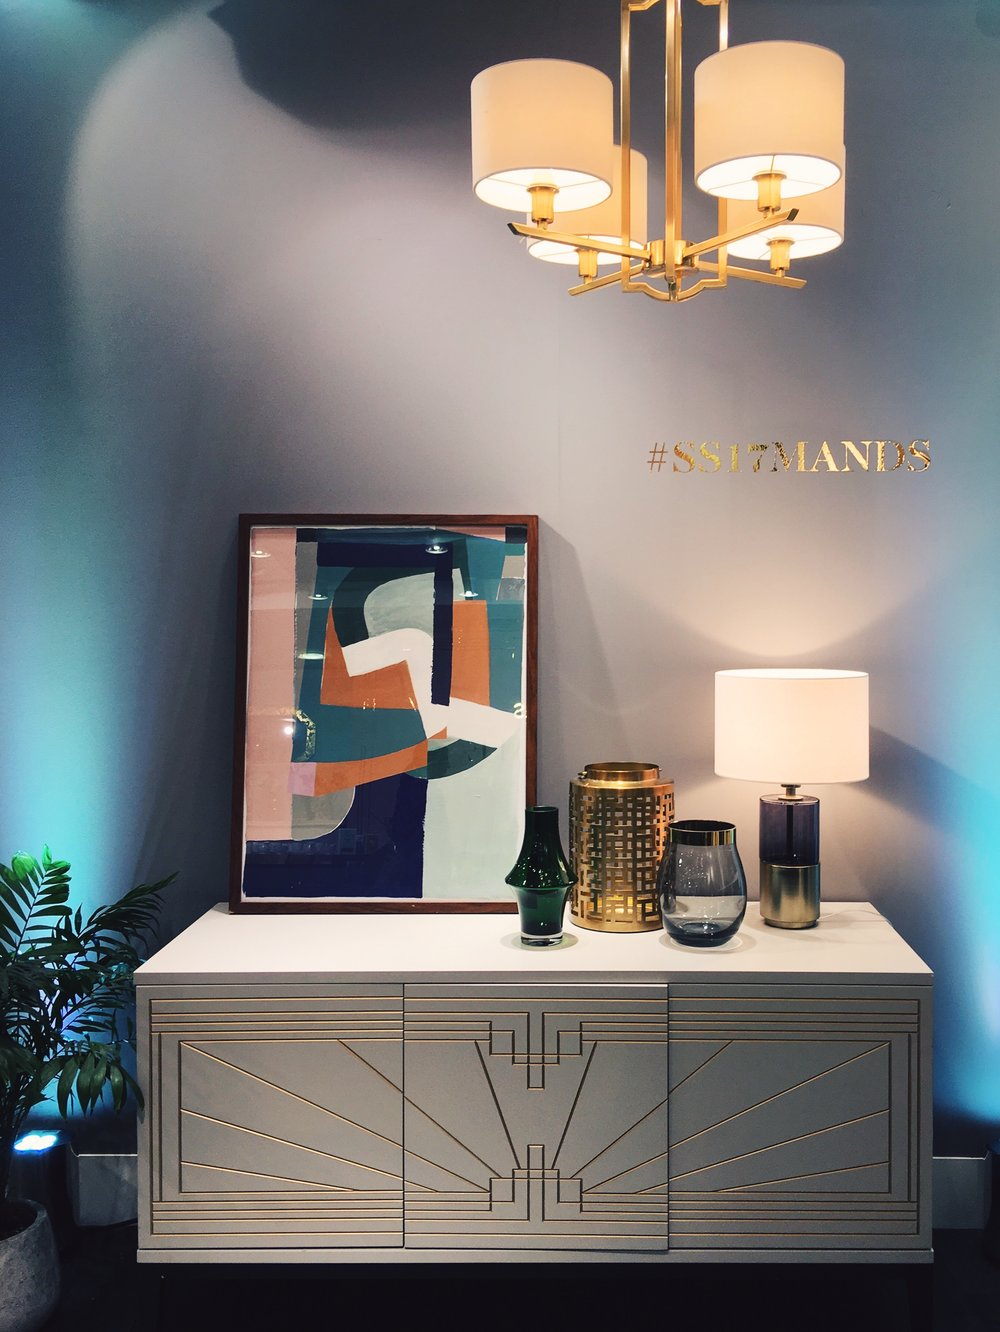 Stella 4 light Chandelier, £129. Carraway Sideboard, £849. Hustle Print (framed), £55. Conran Corin Table Lamp, £89. Conran Small Glass Hurricane, £25. Deco Lantern, £25. All part of the 'Luxe Revival' range at M&S.